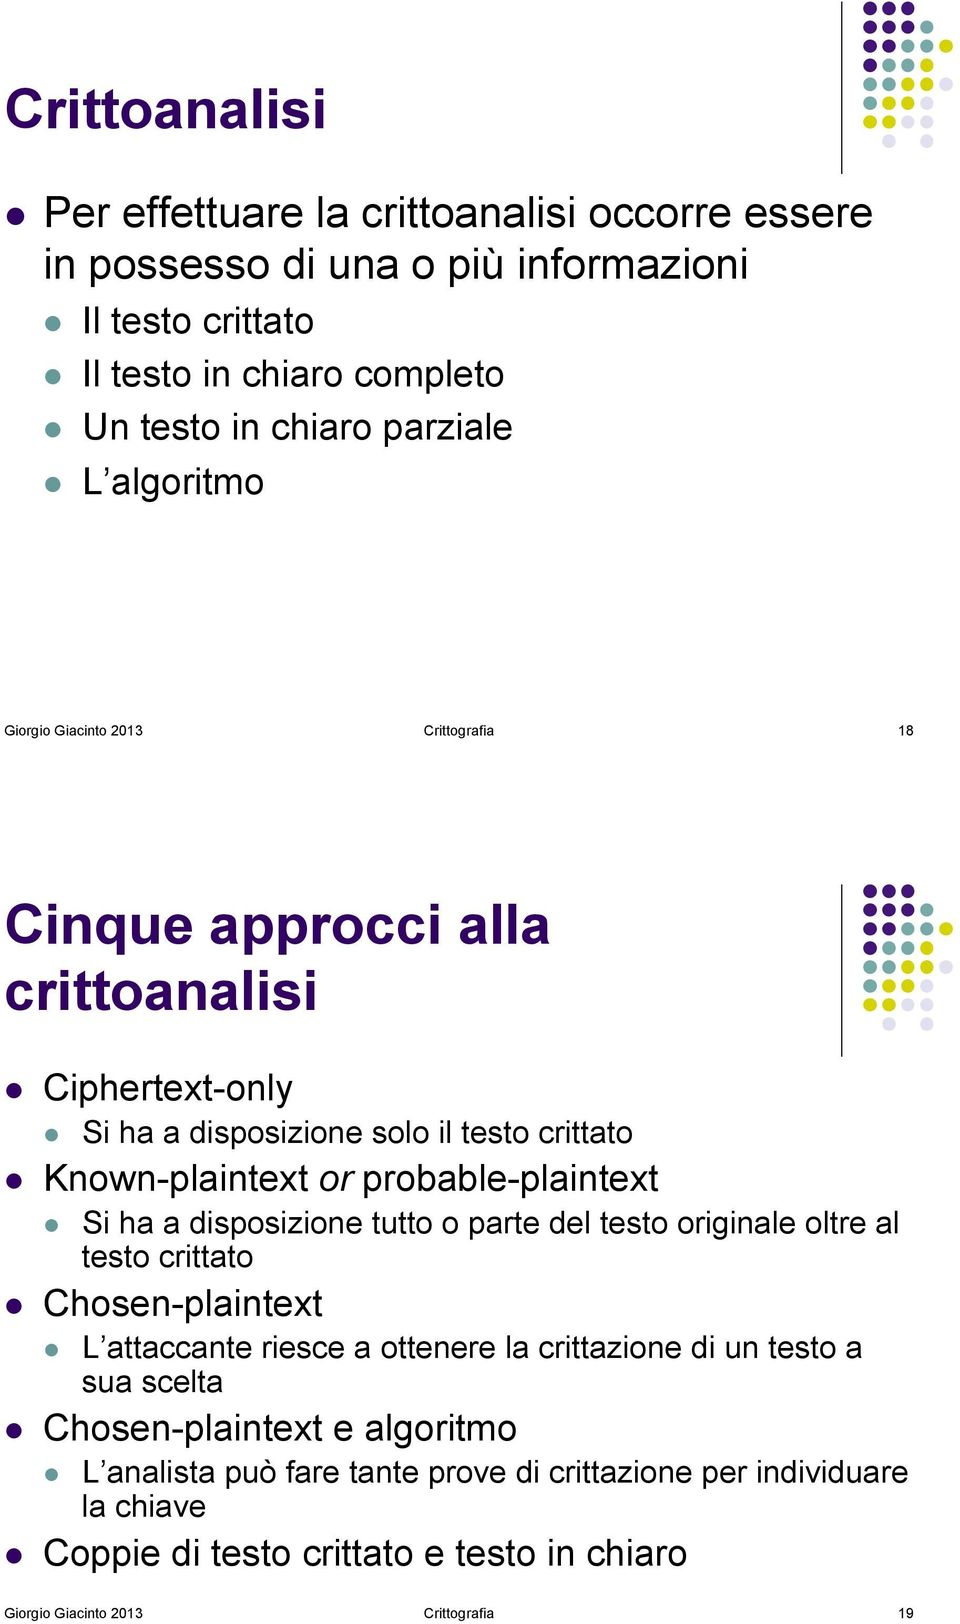 Known-plaintext or probable-plaintext! Si ha a disposizione tutto o parte del testo originale oltre al testo crittato! Chosen-plaintext!